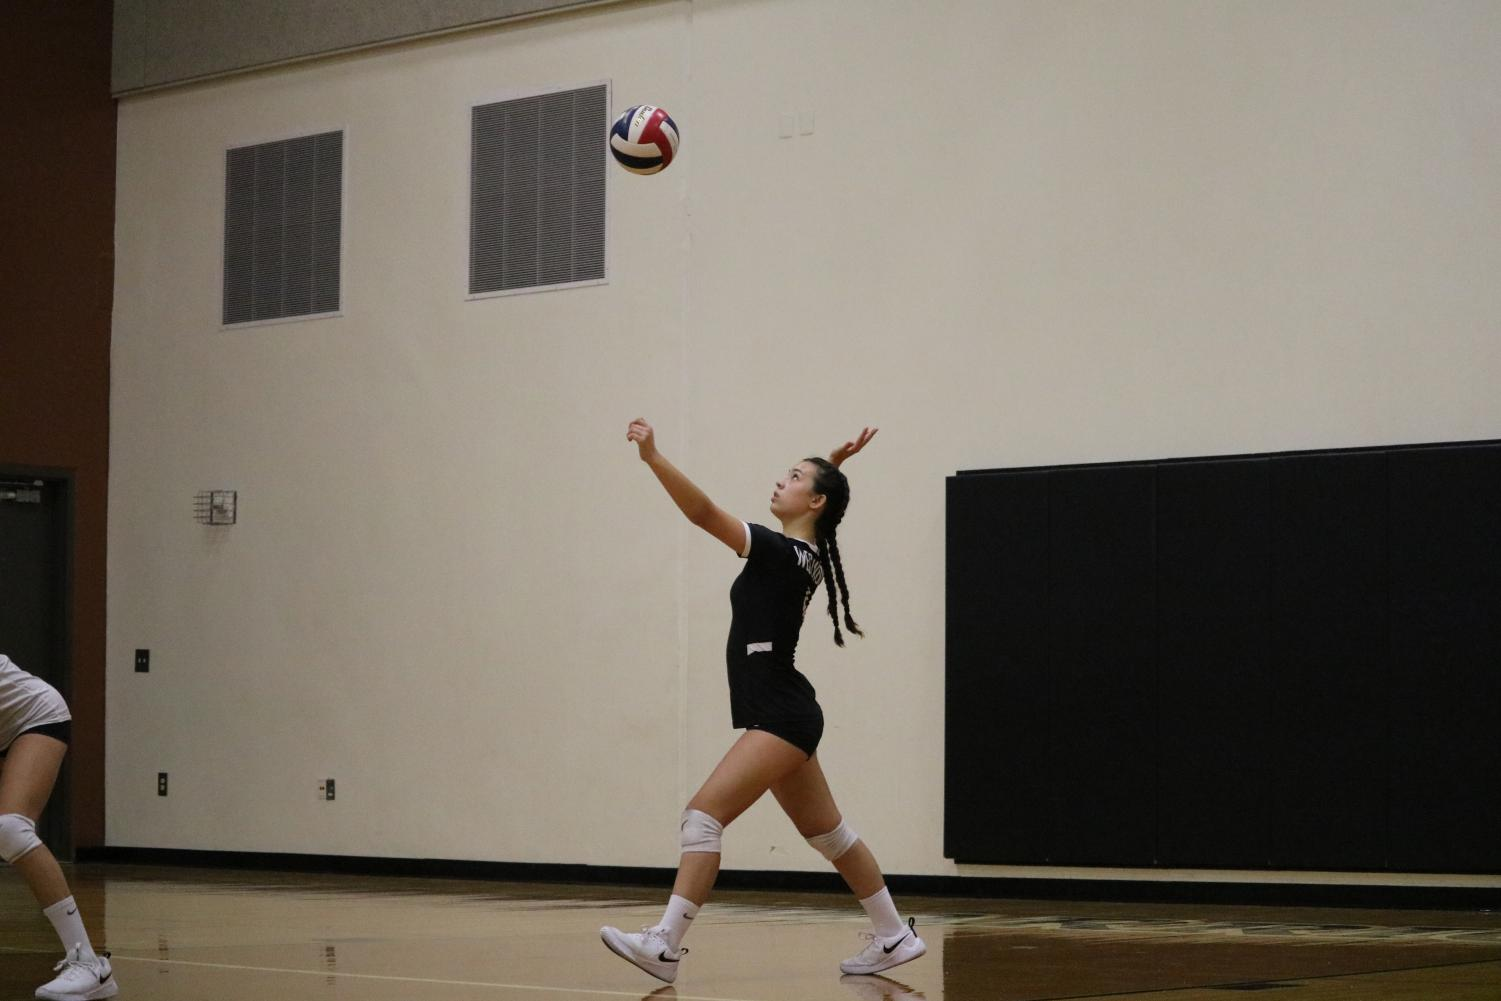 Izzy+Correll+%2722+gets+ready+to+serve+the+ball.+